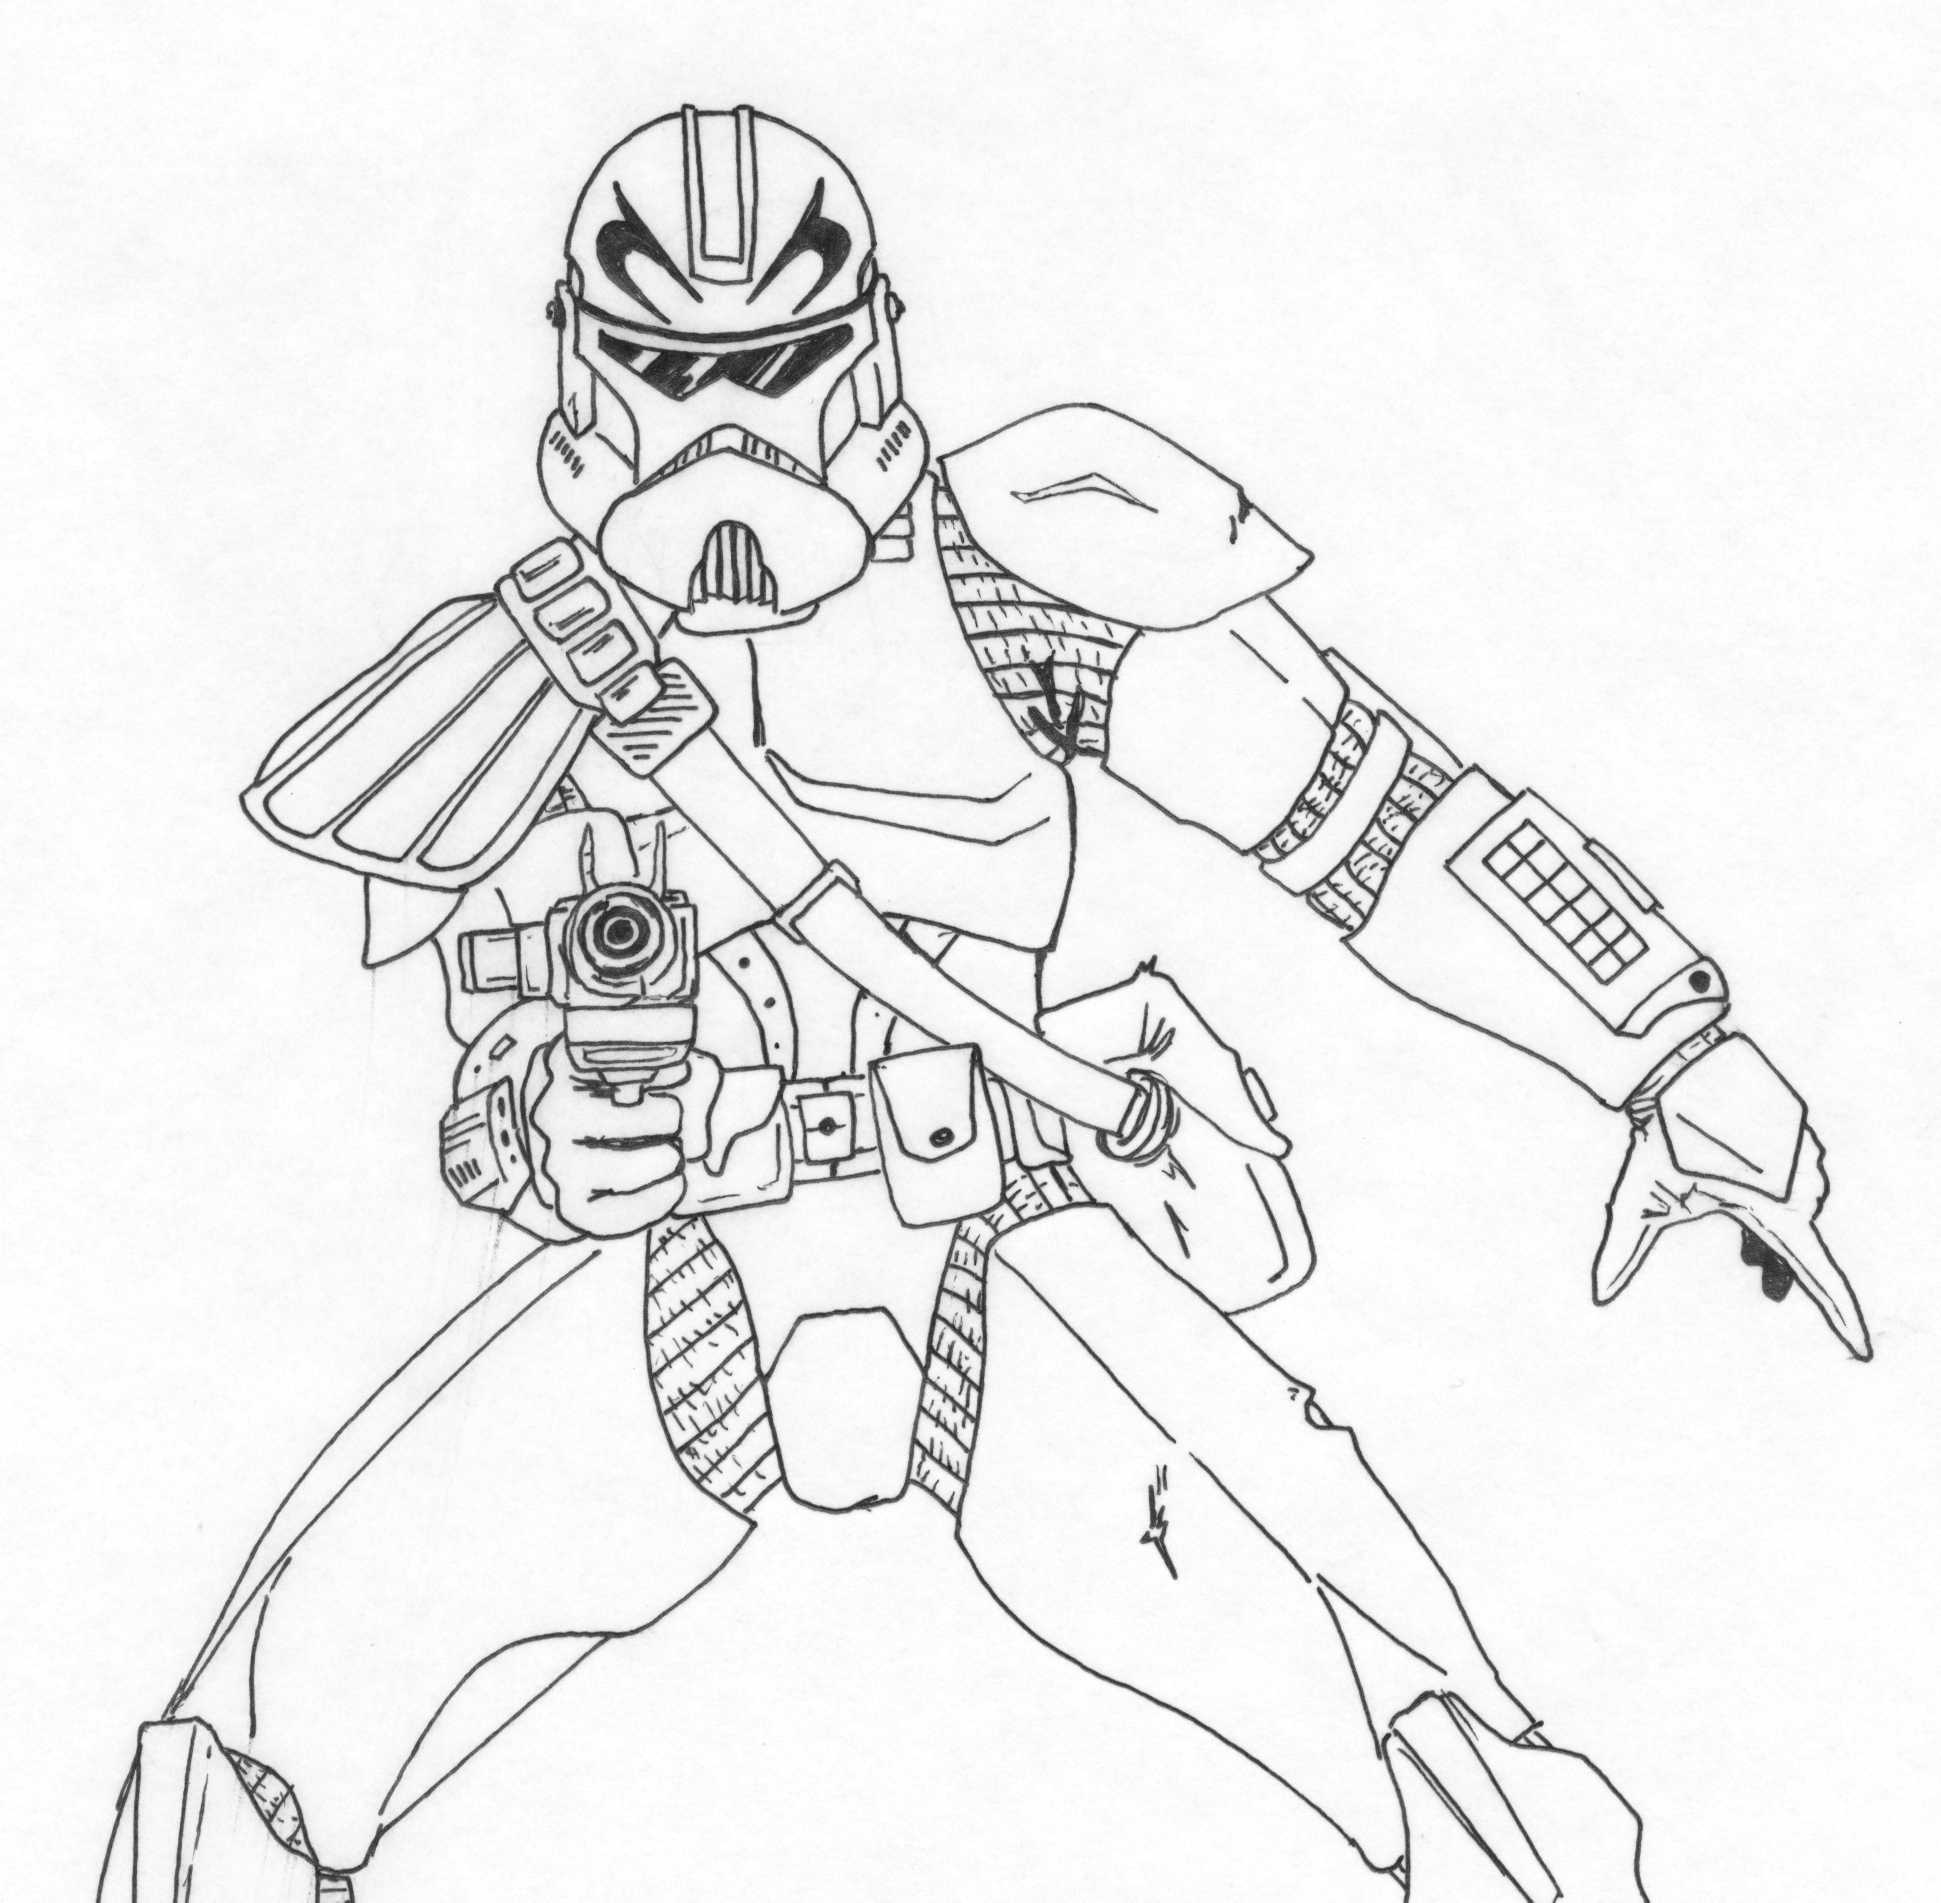 Coloring Pages Captain Rex Coloring Pages star wars captain rex coloring pages az page